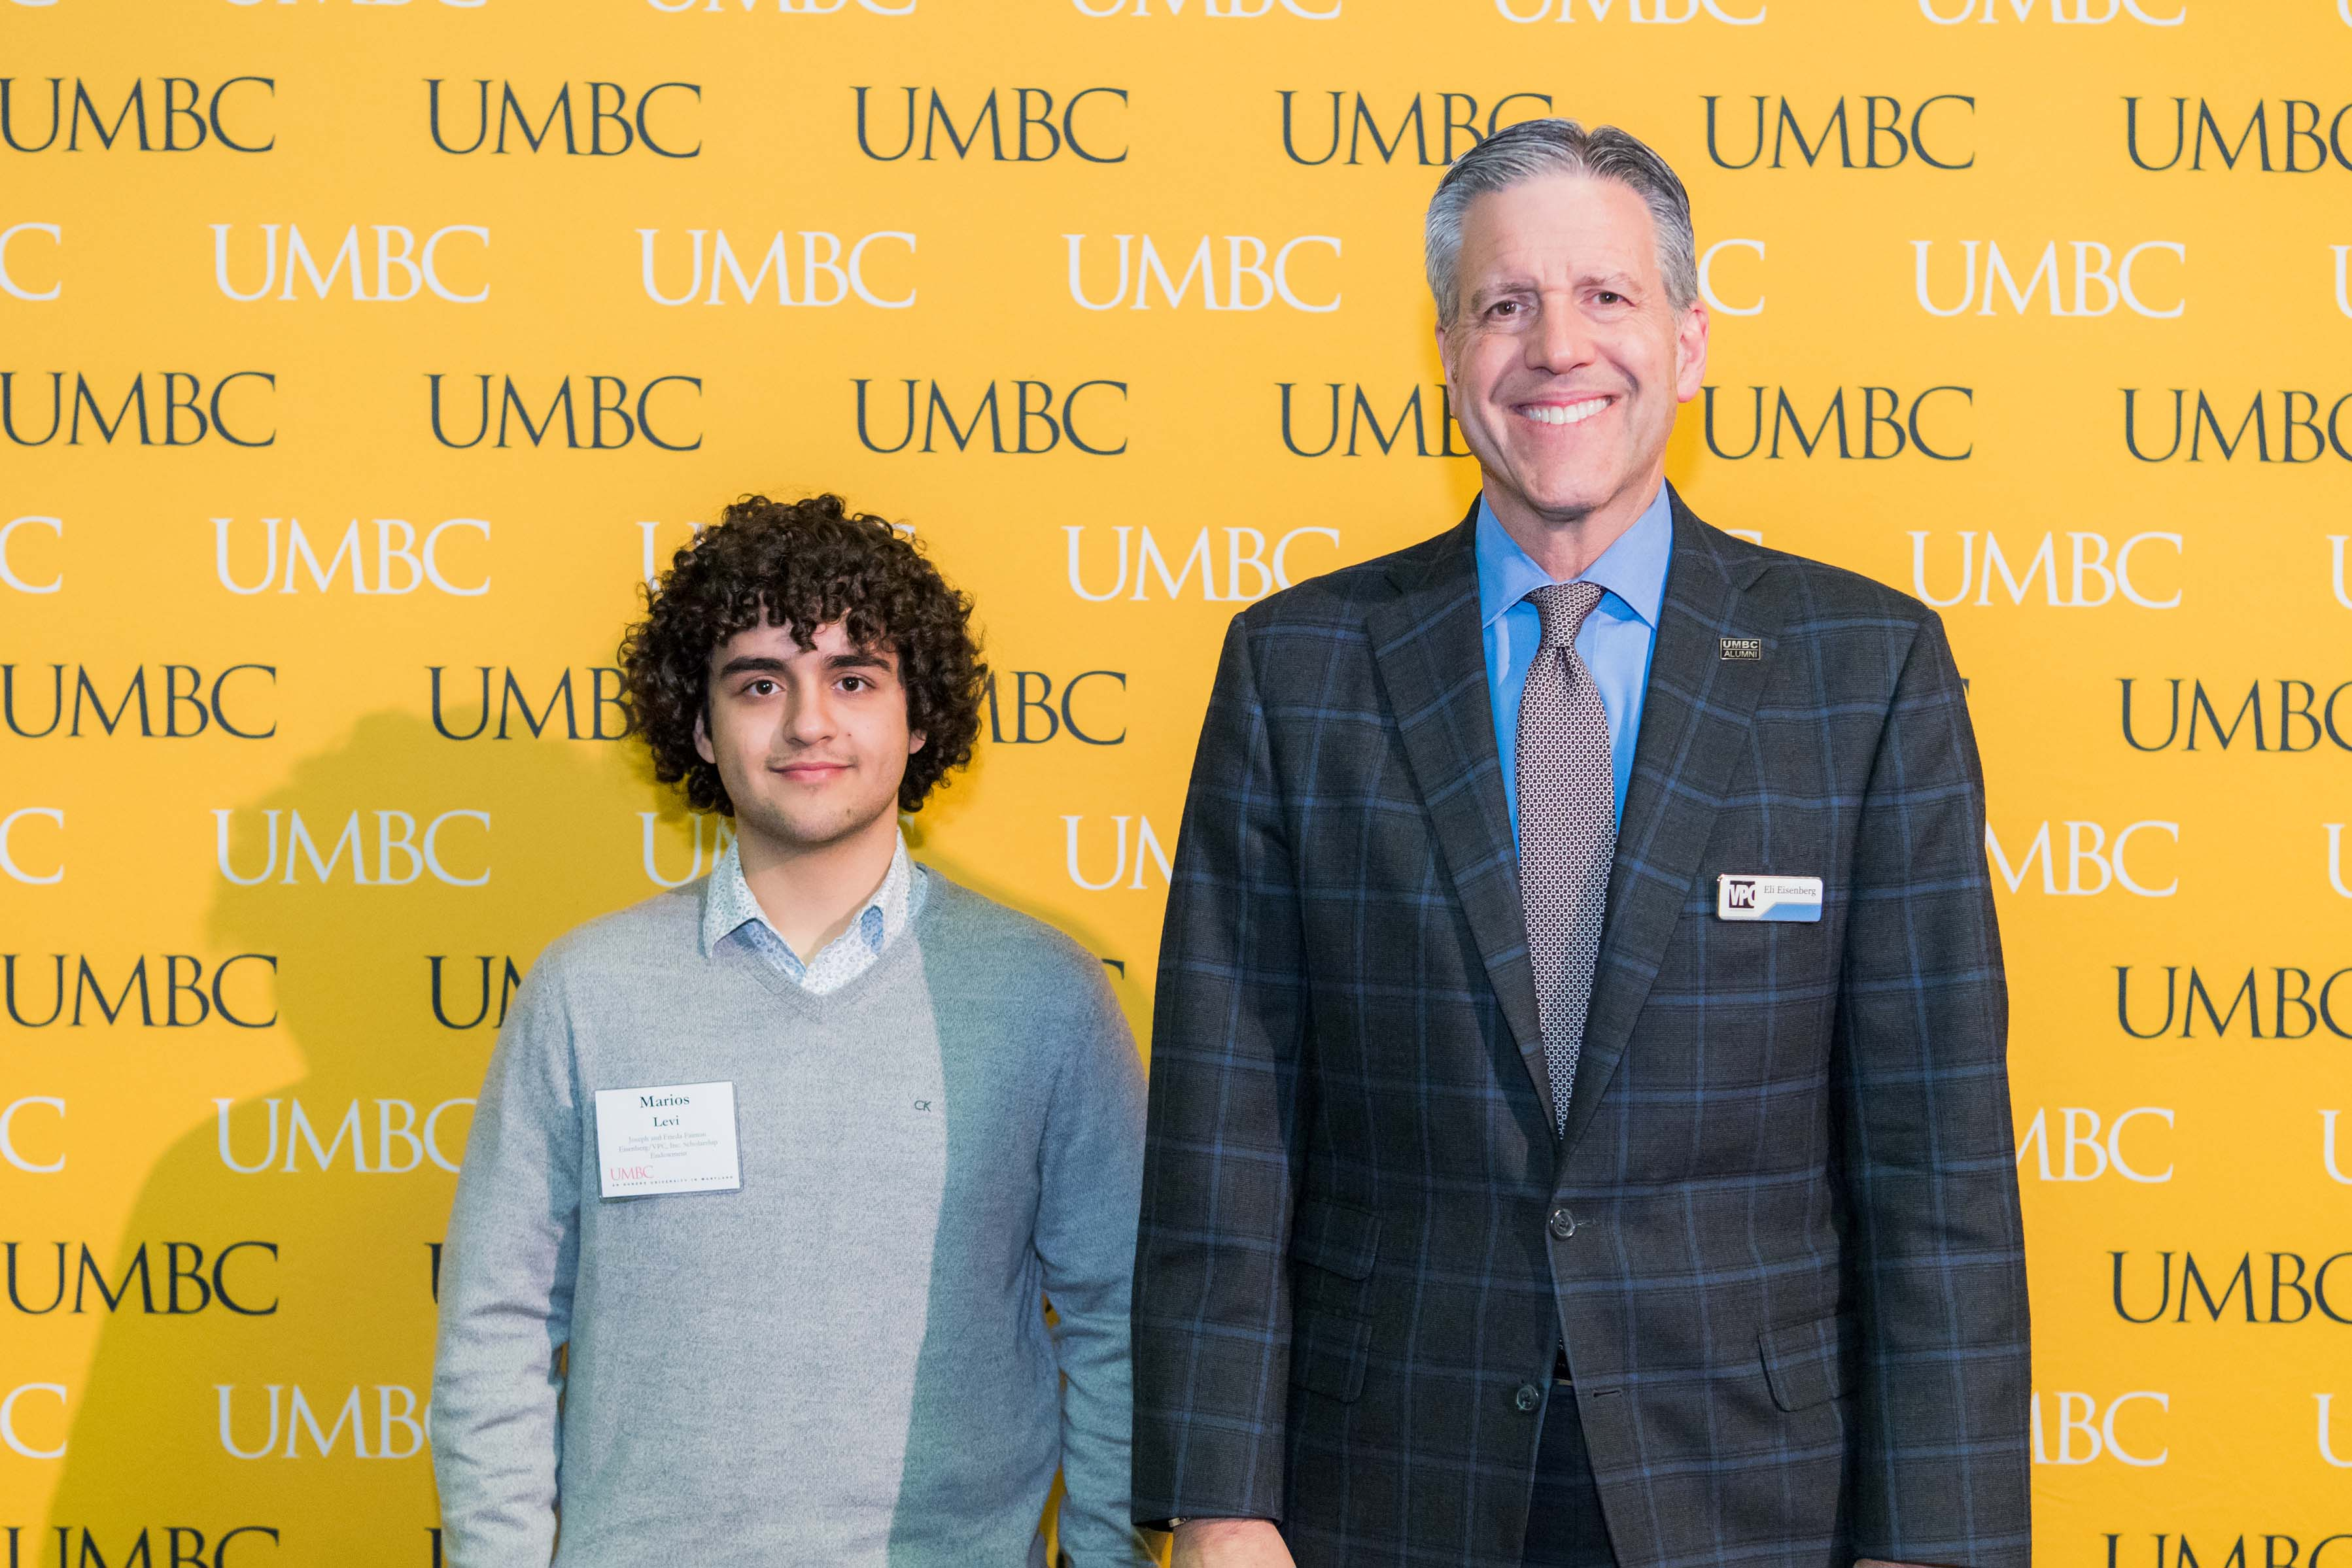 Two men pose in front of the UMBC wall at the scholarship luncheon